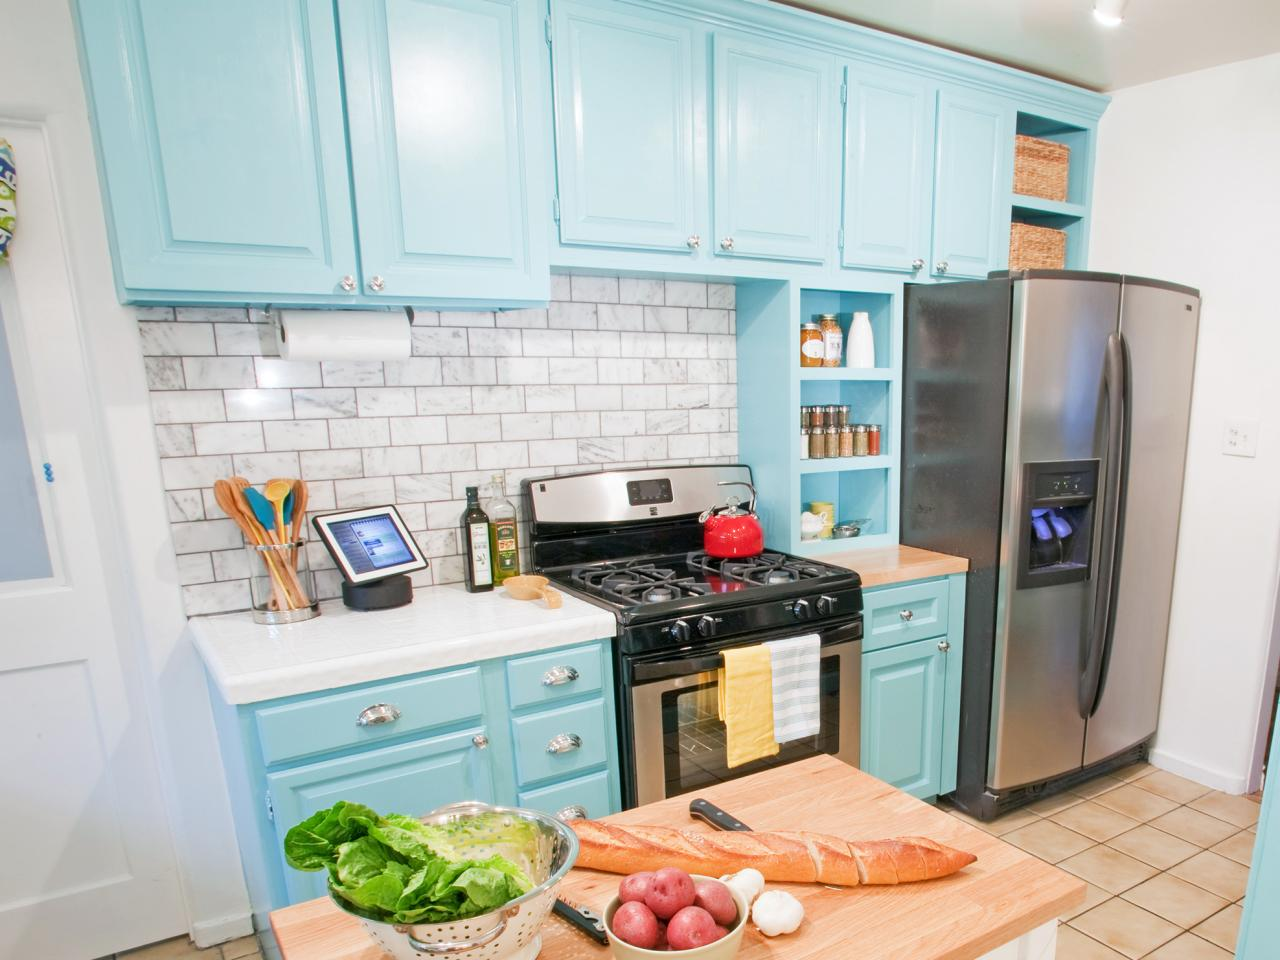 Colored Kitchen Cabinets kitchen cabinet colors and finishes: pictures, options, tips